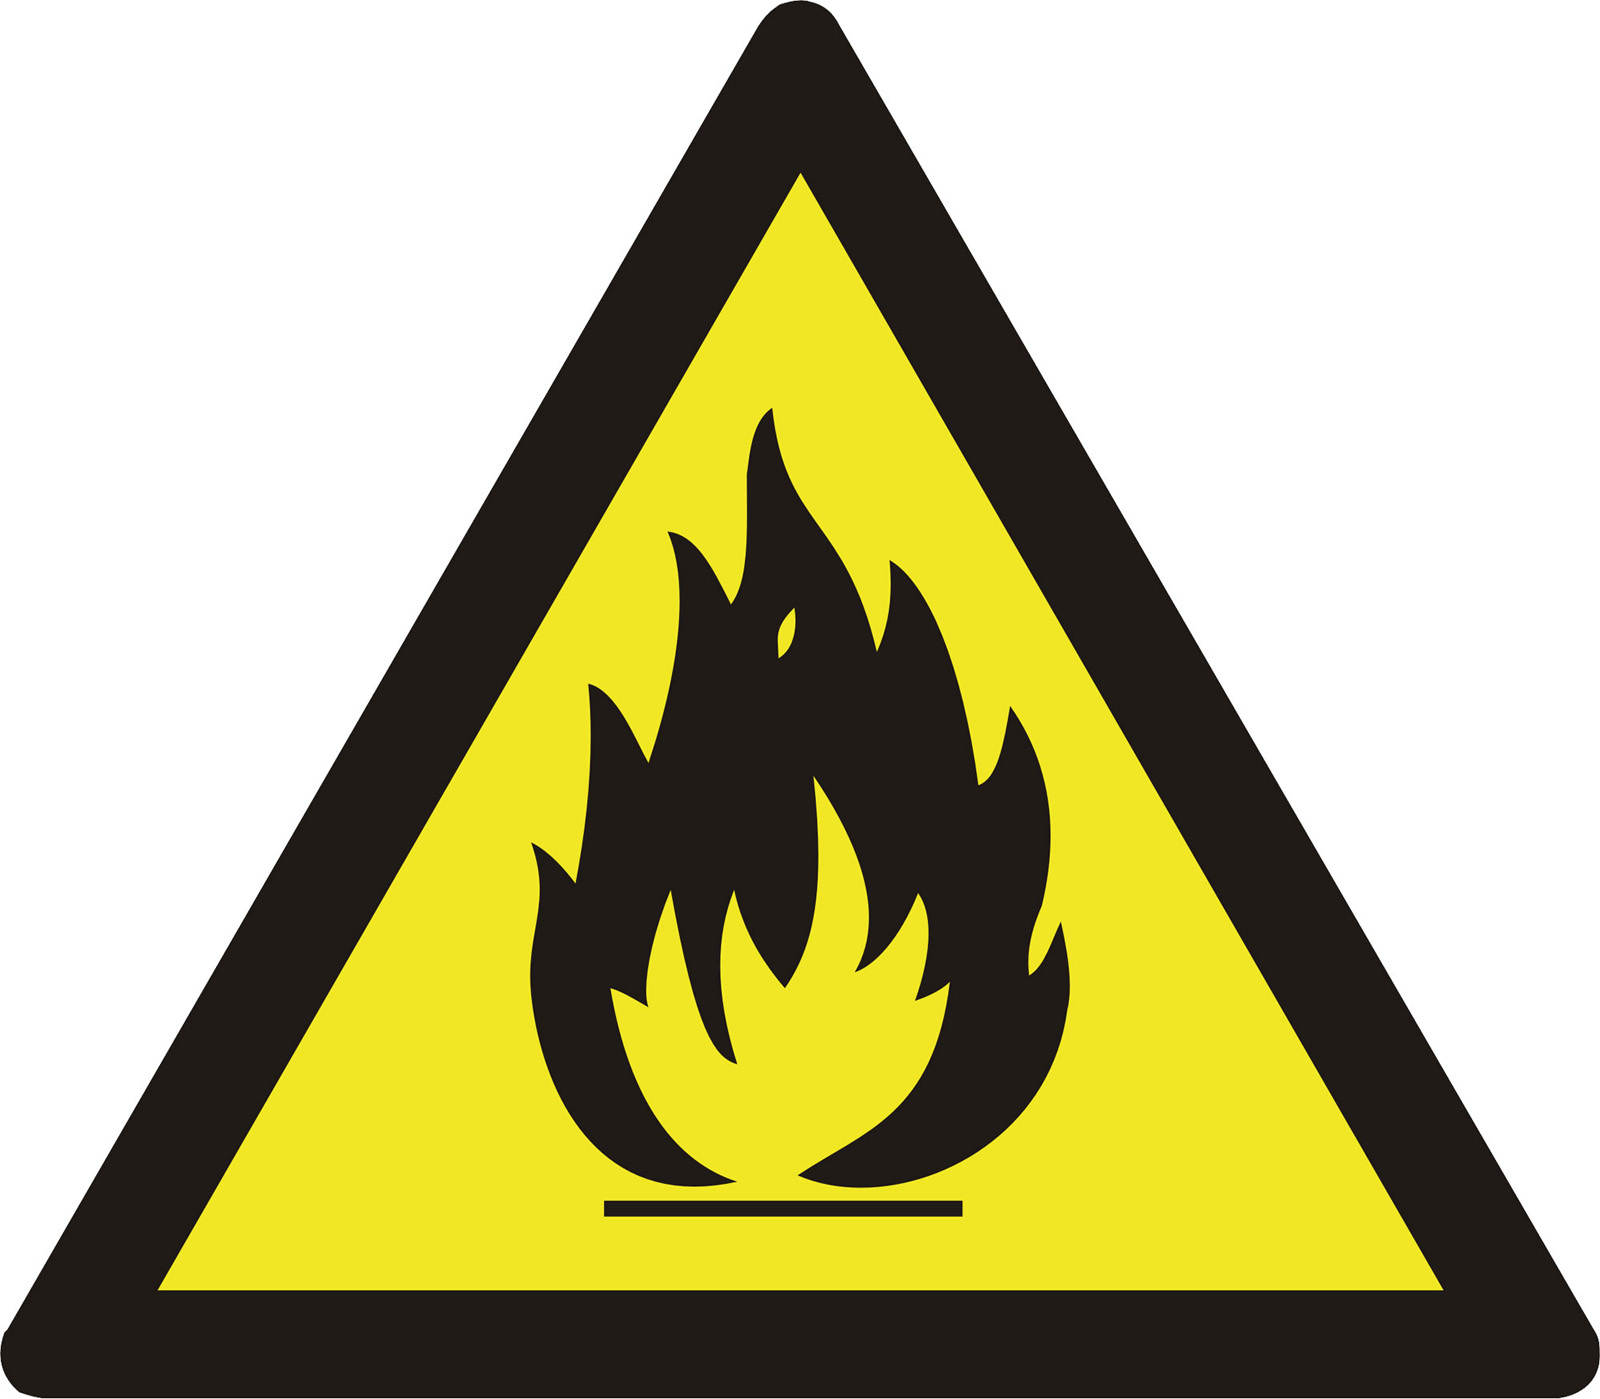 Preproomorg Warning Signs Highly Extremely Flammable